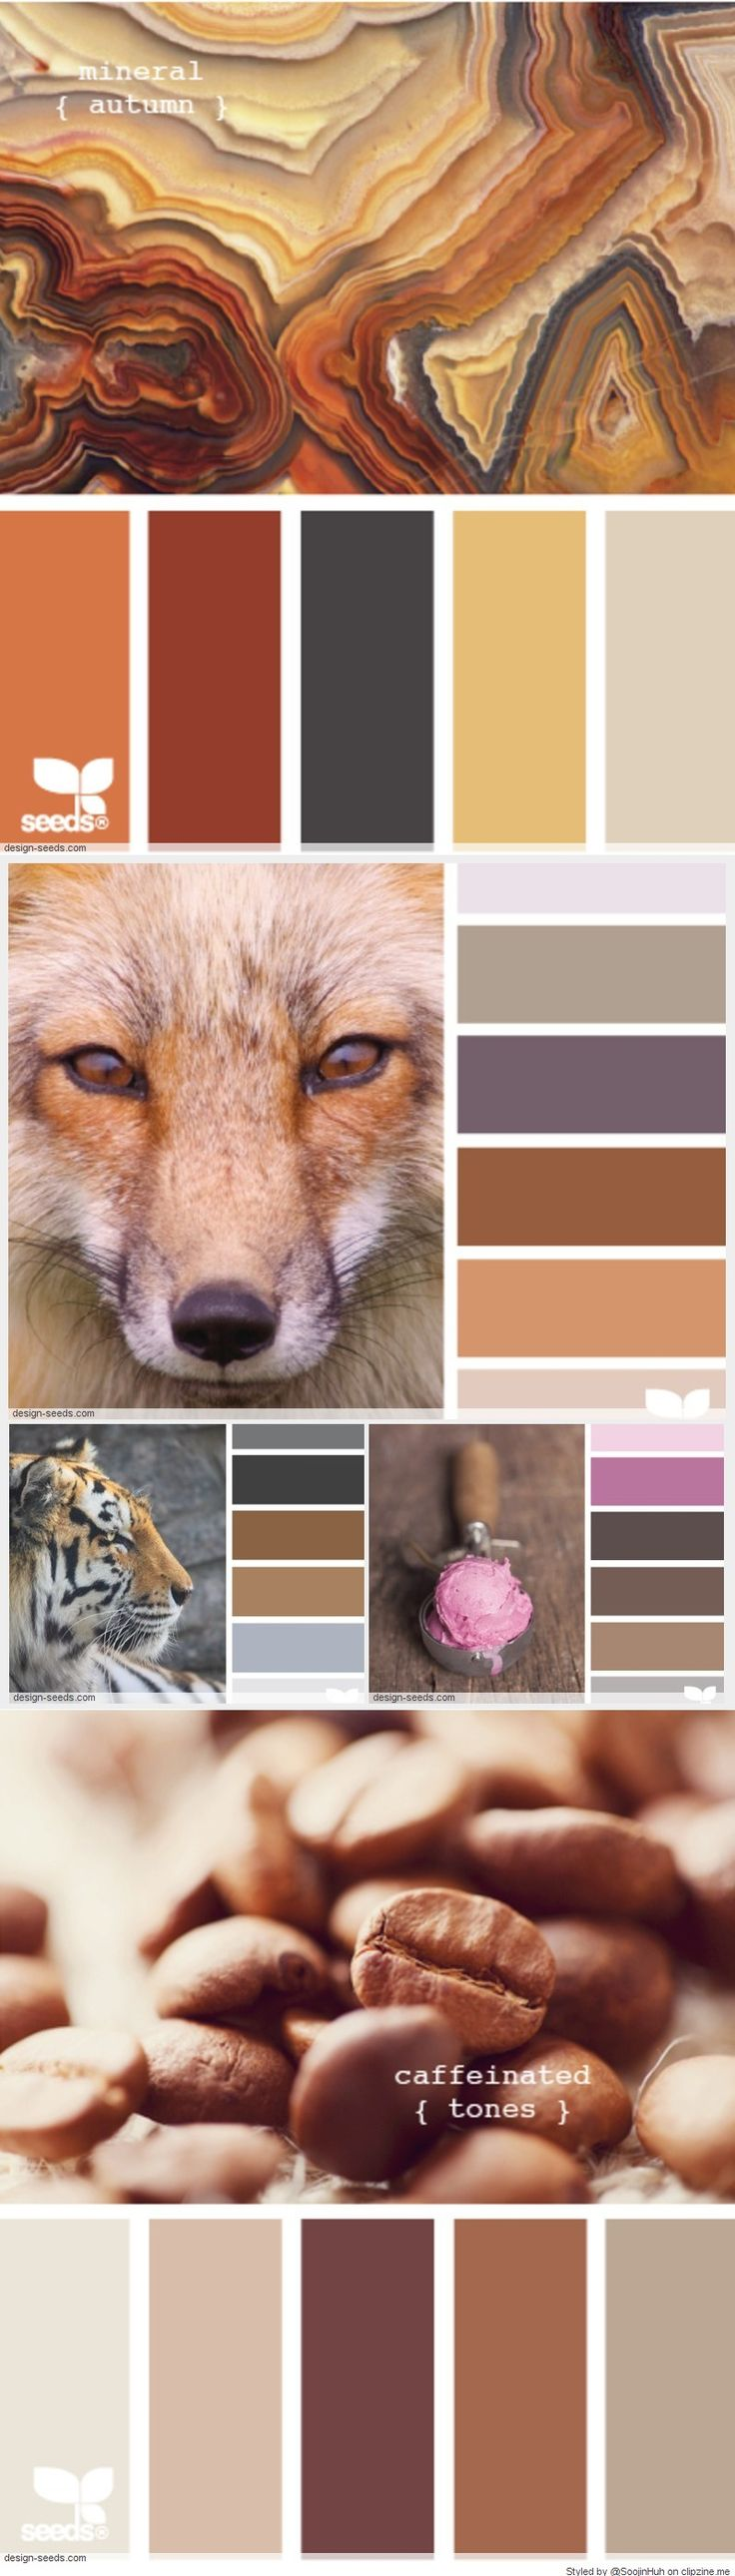 Warm Color Palette Cool Best 25 Warm Color Palettes Ideas On Pinterest  Warm Colors Inspiration Design